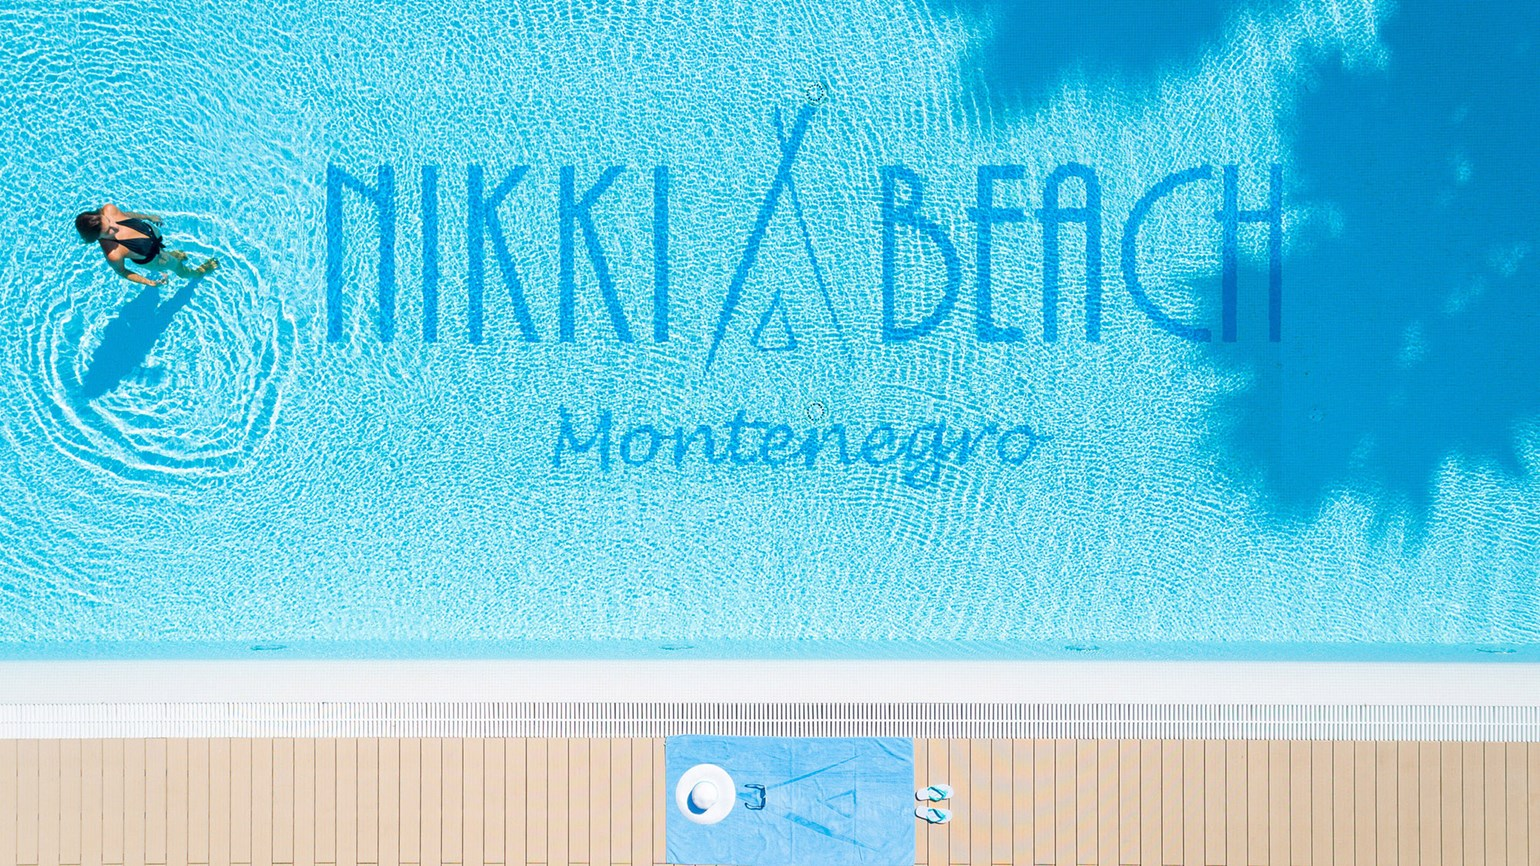 Nikki Beach opens new resort in Montenegro